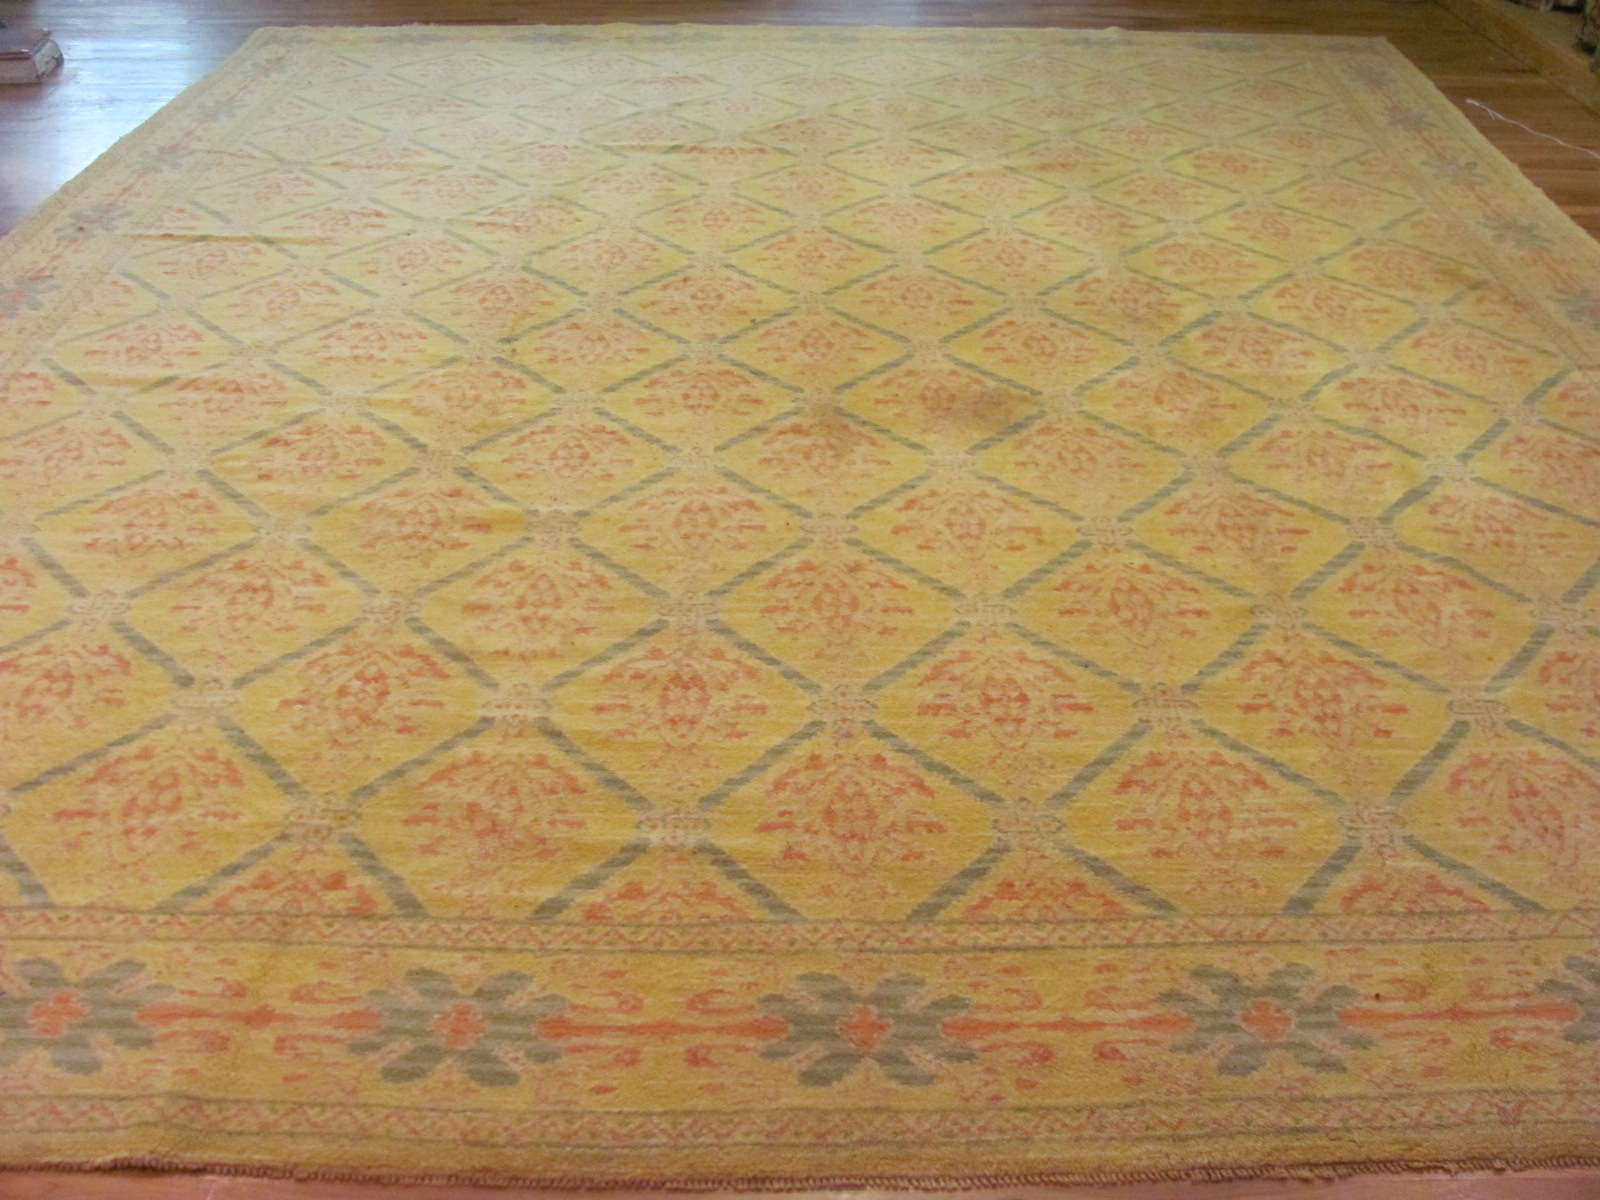 Spanish Carpet | Handmade | Circa 1930s